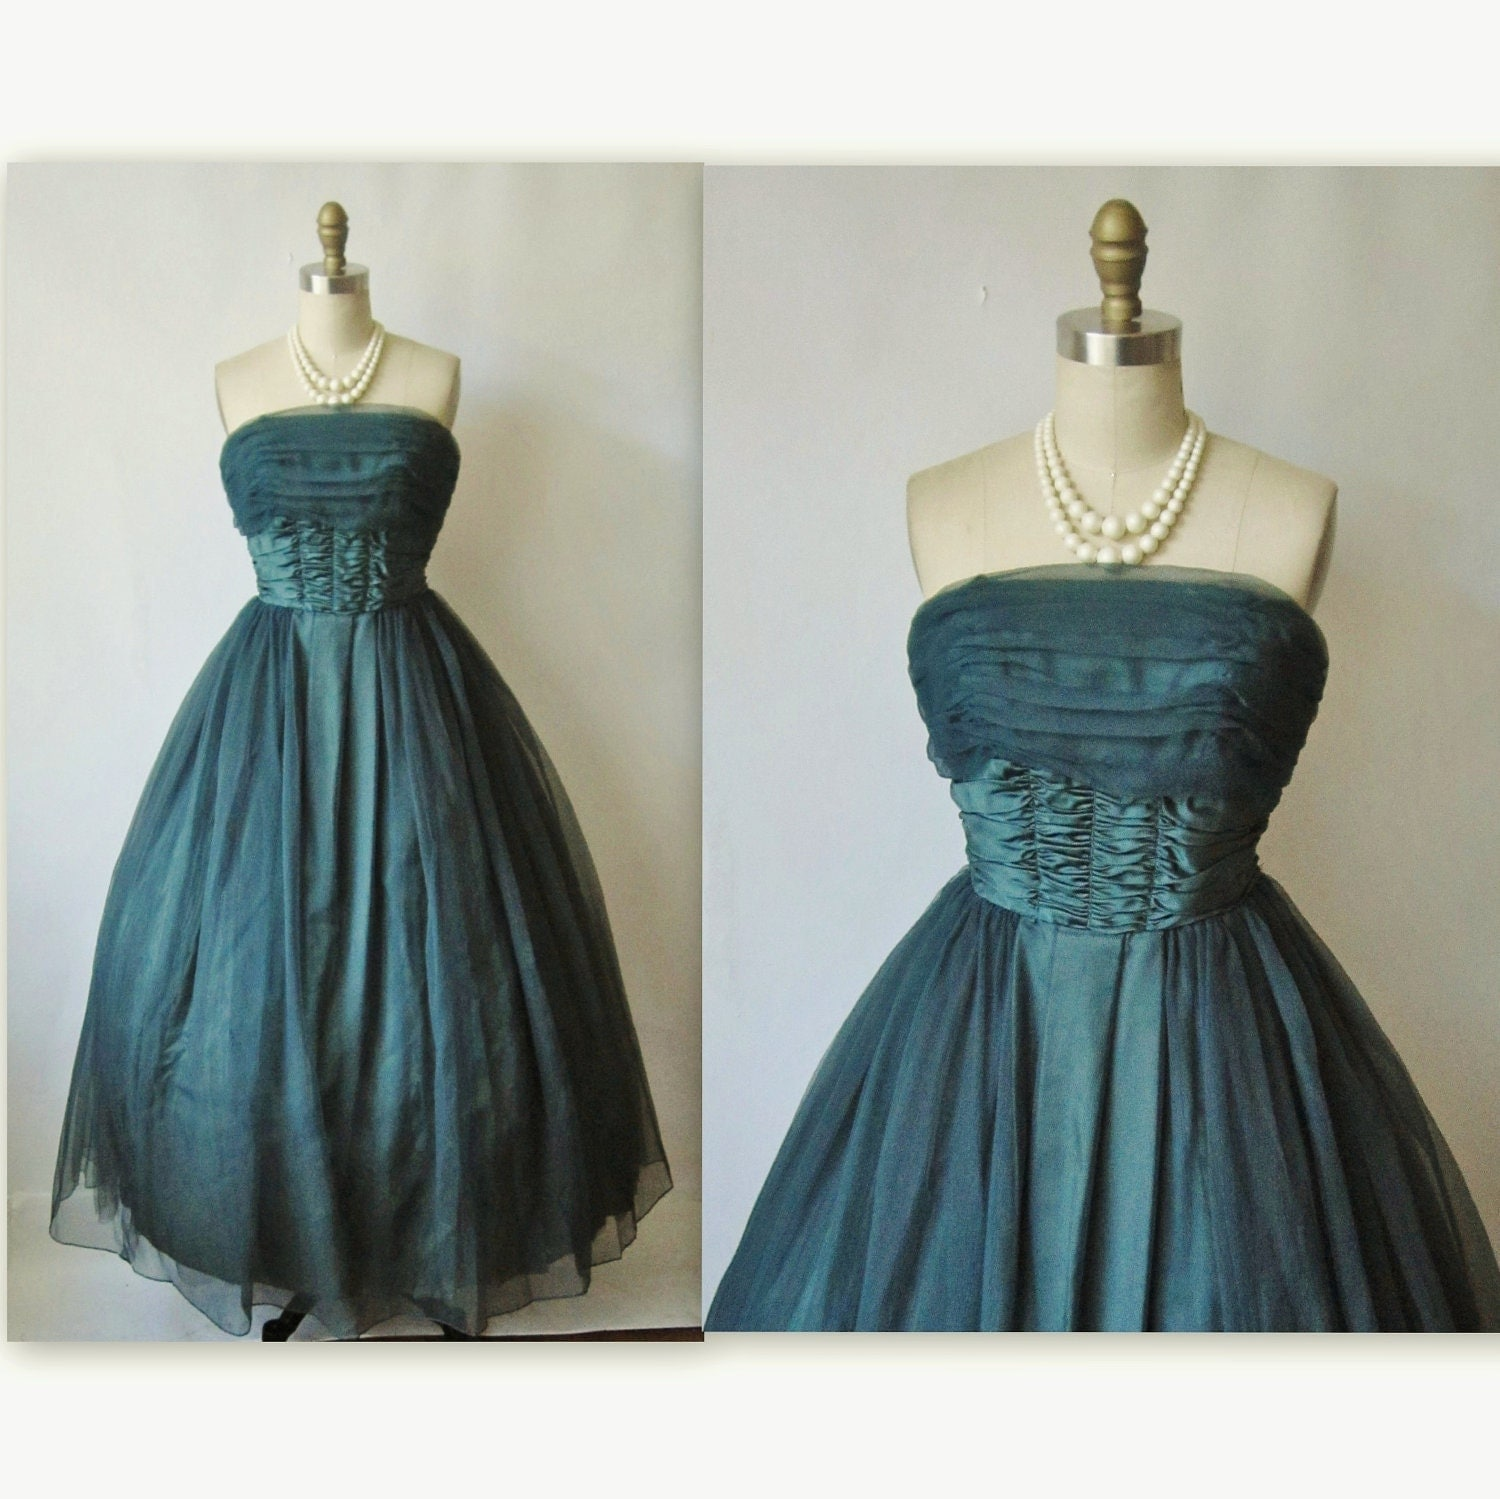 60s prom dress vintage 1960s dramatic floor